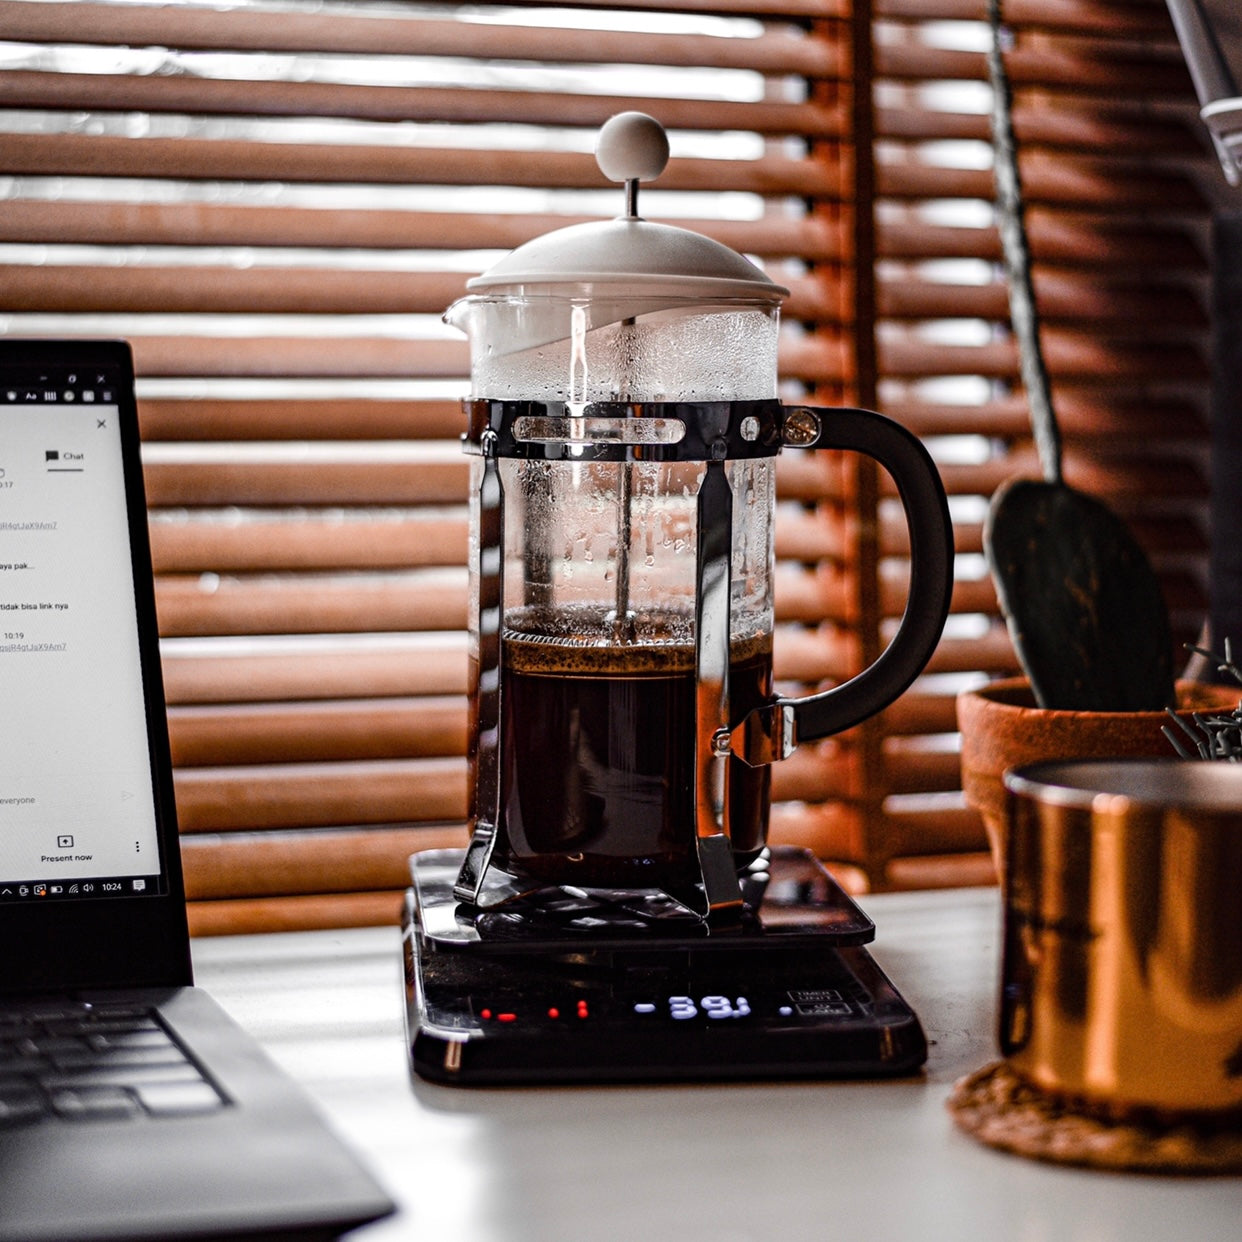 f-stop coffee brew guide french press